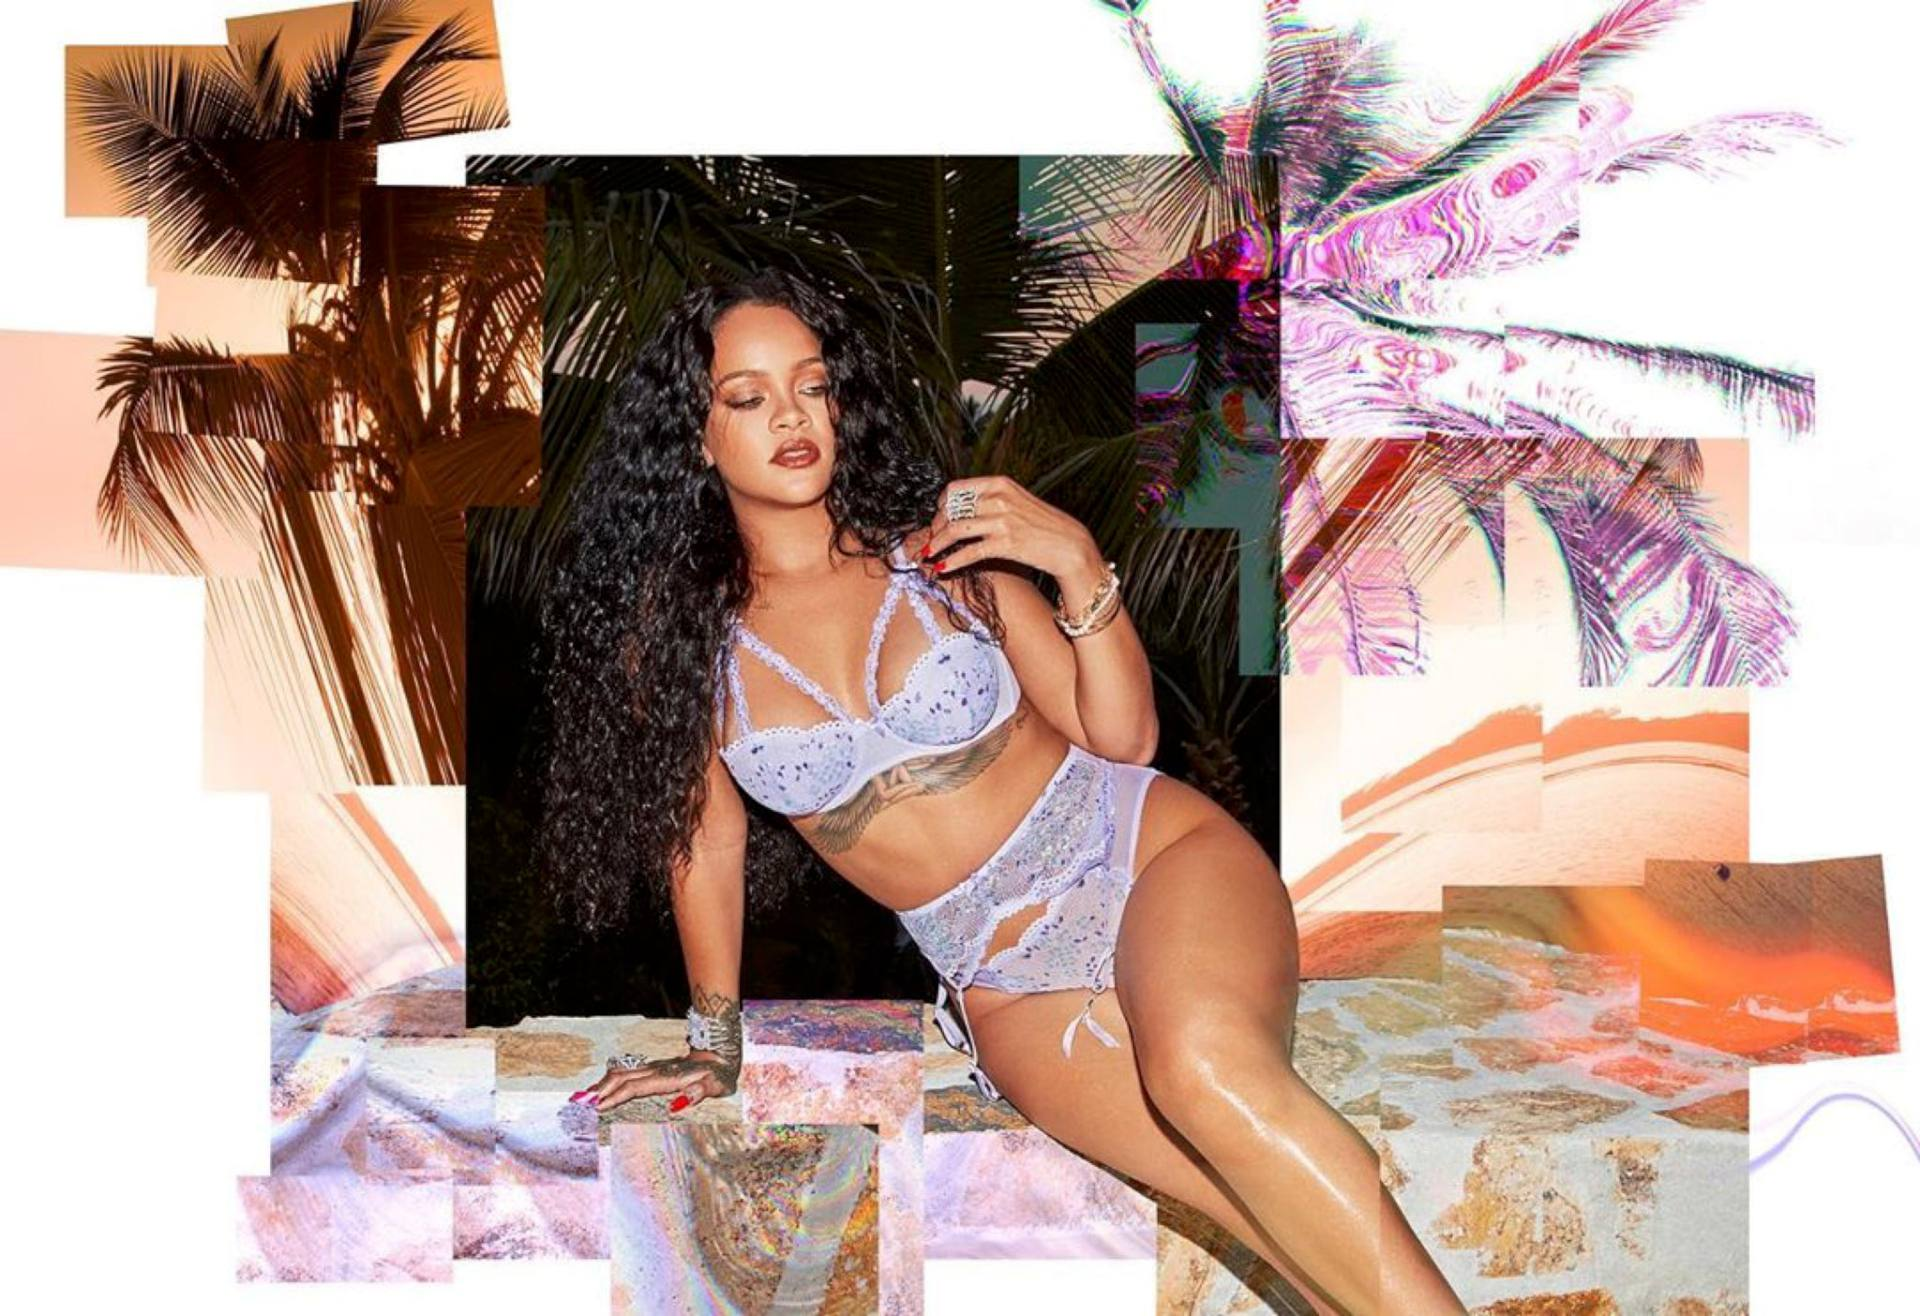 Rihanna Hot Body In Lingerie